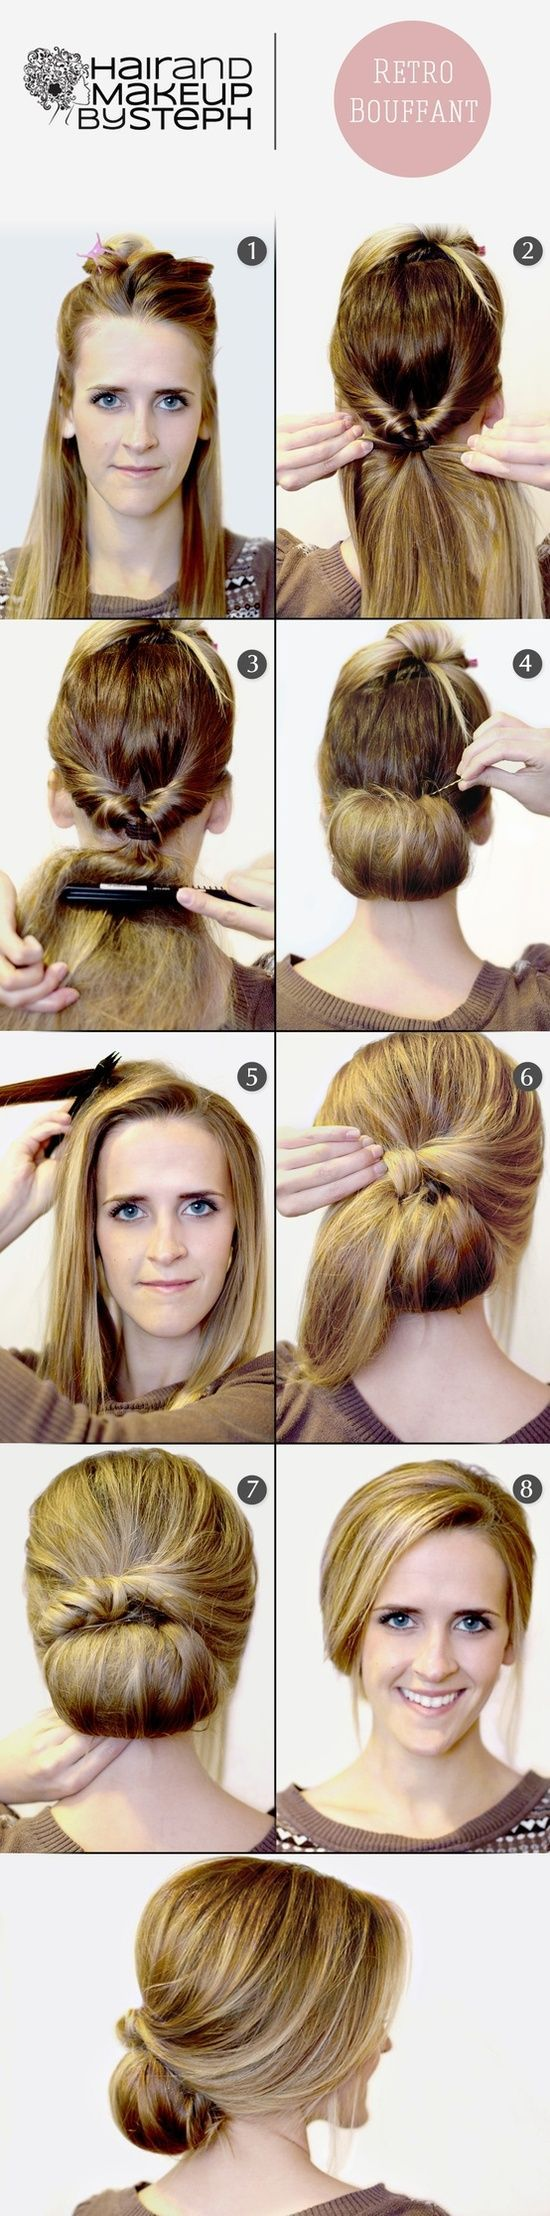 Hair and Make-up by Steph: How To:  Retro Bouffant blog.hairandmakeupbysteph.com